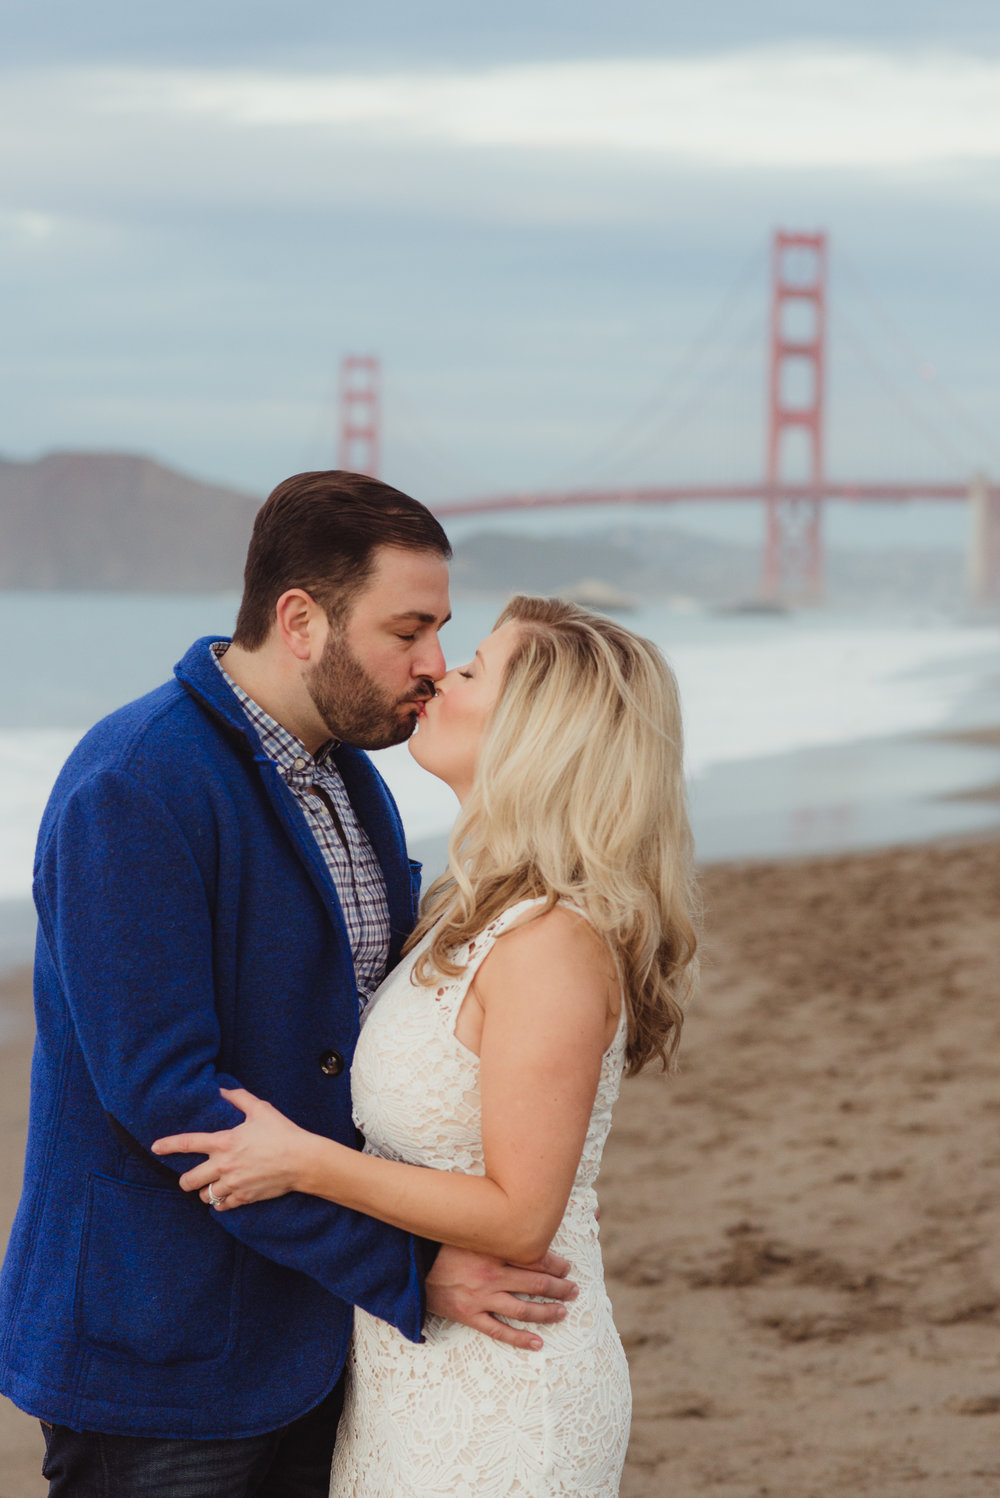 presidio-woodline-baker-beach-SF-engagement-session-vivianchen-075.jpg